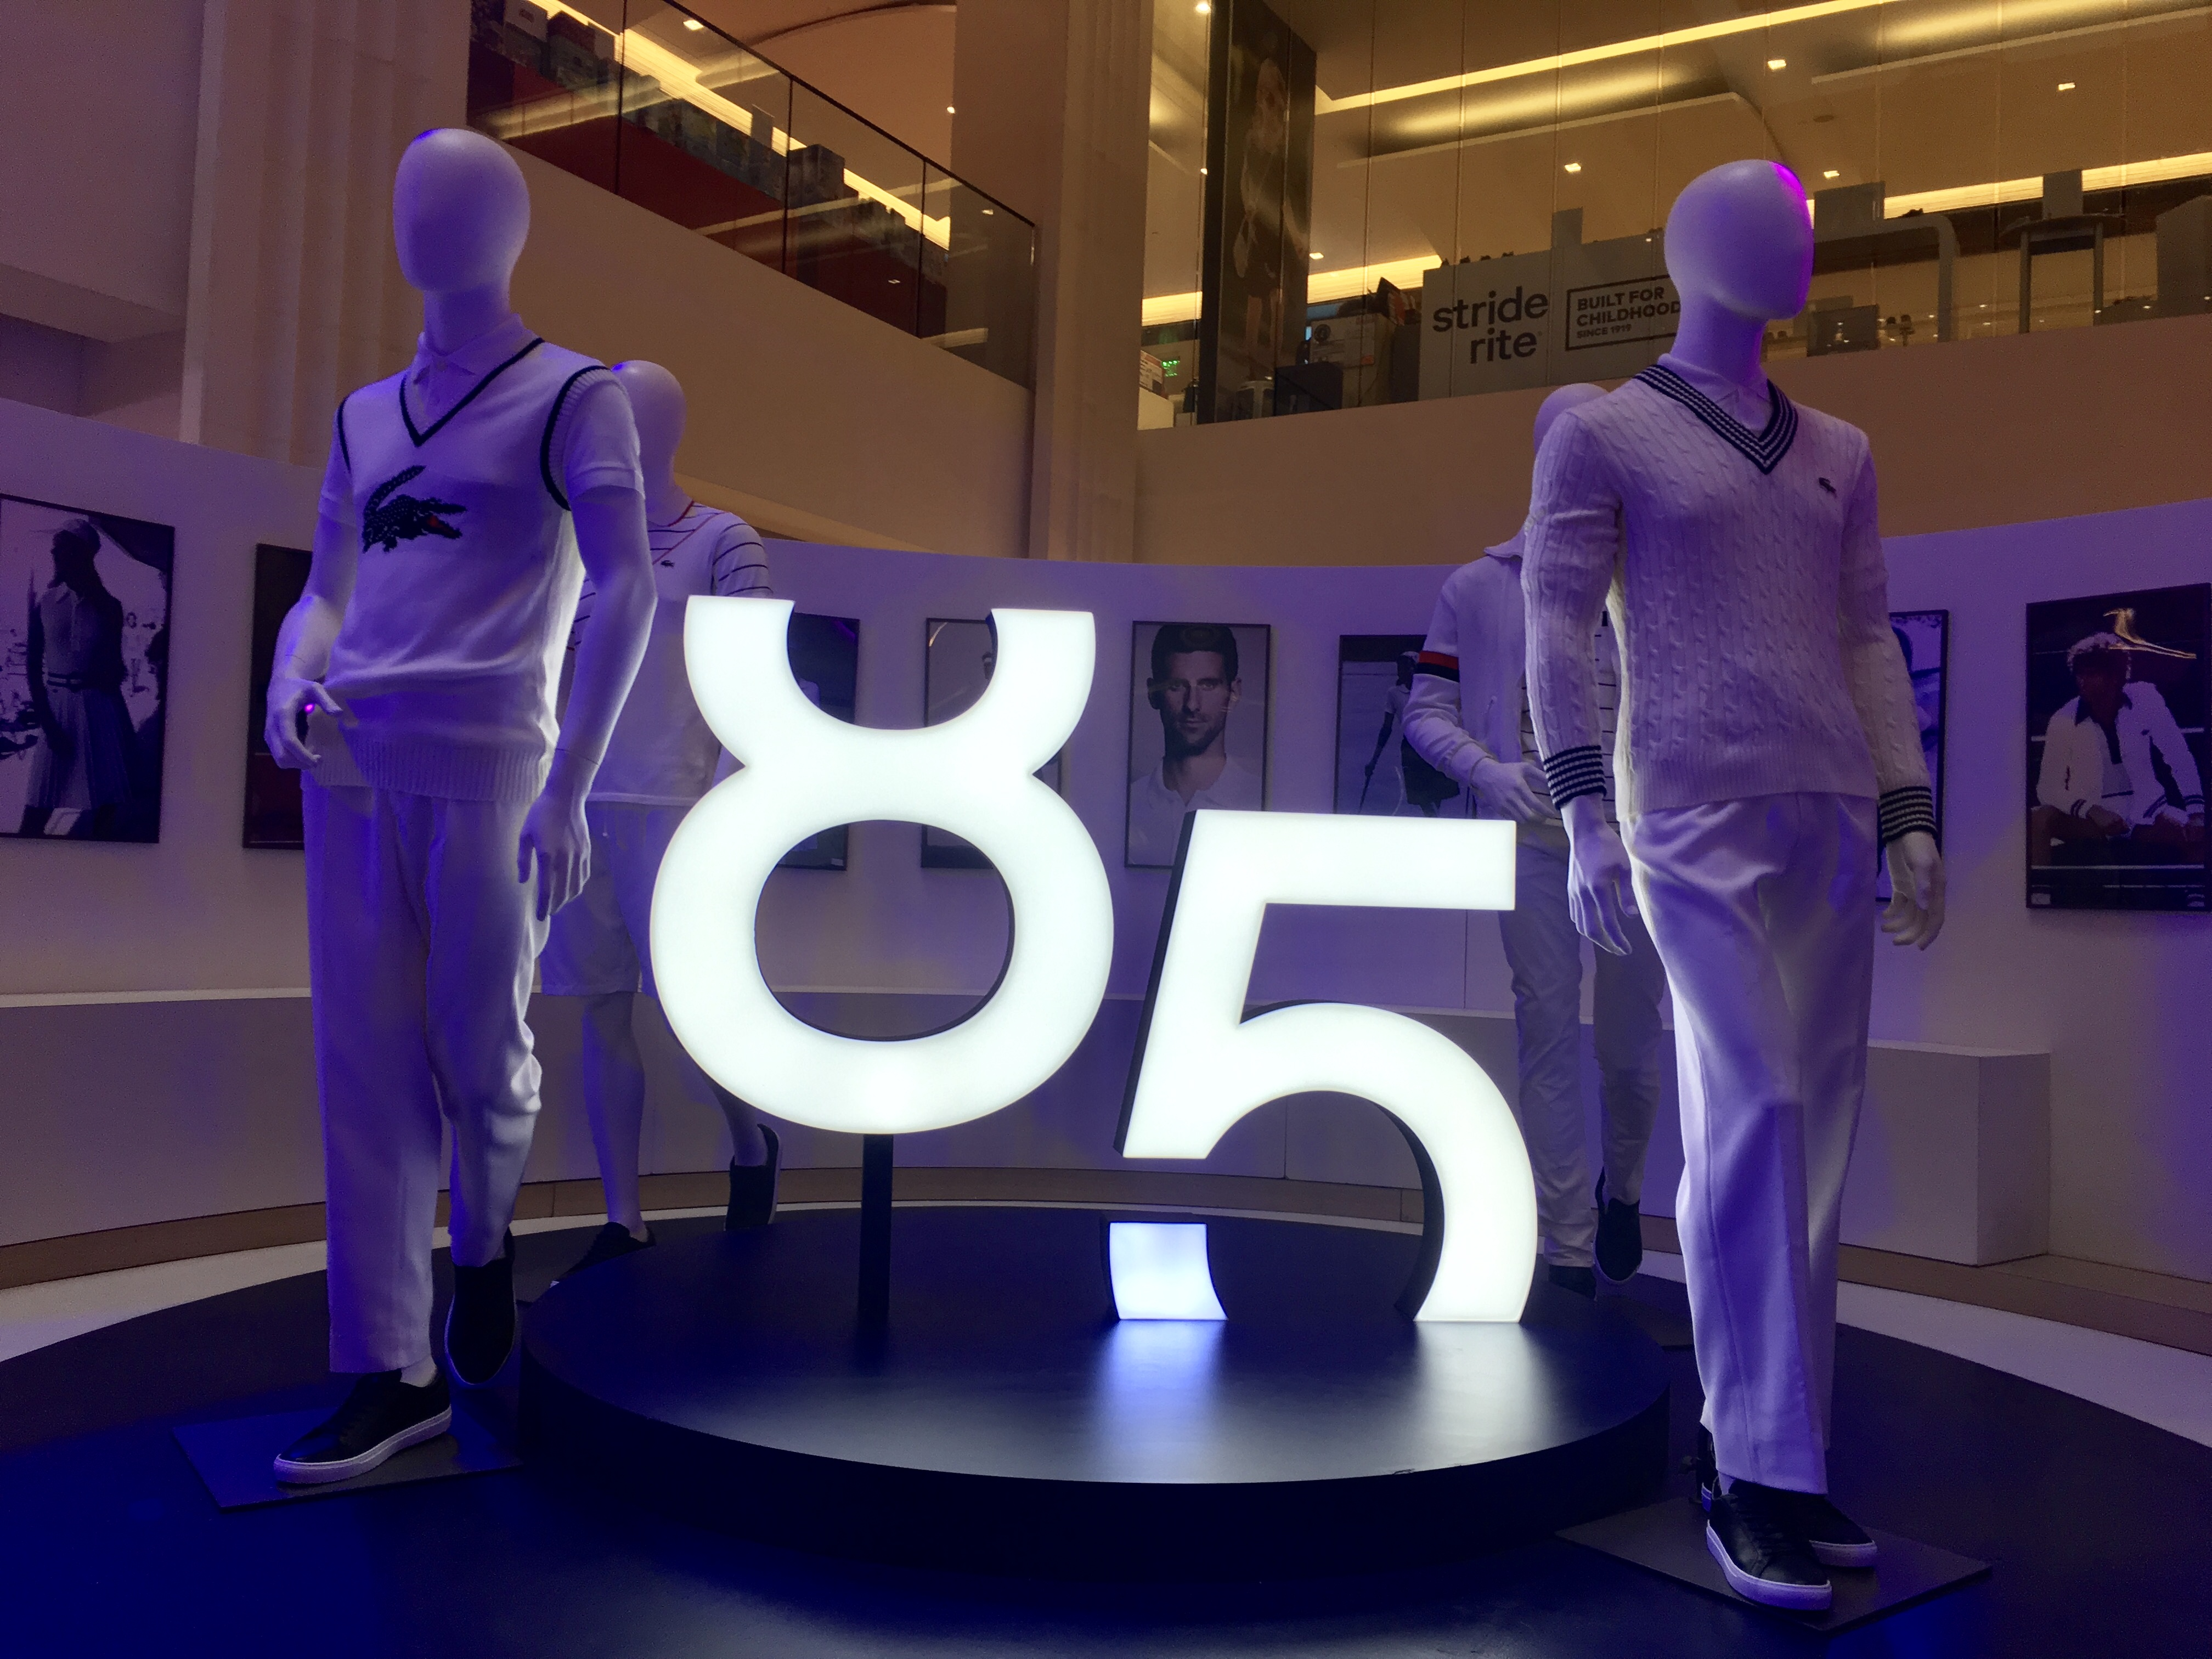 cb8704eaffb4 One of the main features of the Lacoste 85th anniversary exhibit at the  Central Mall